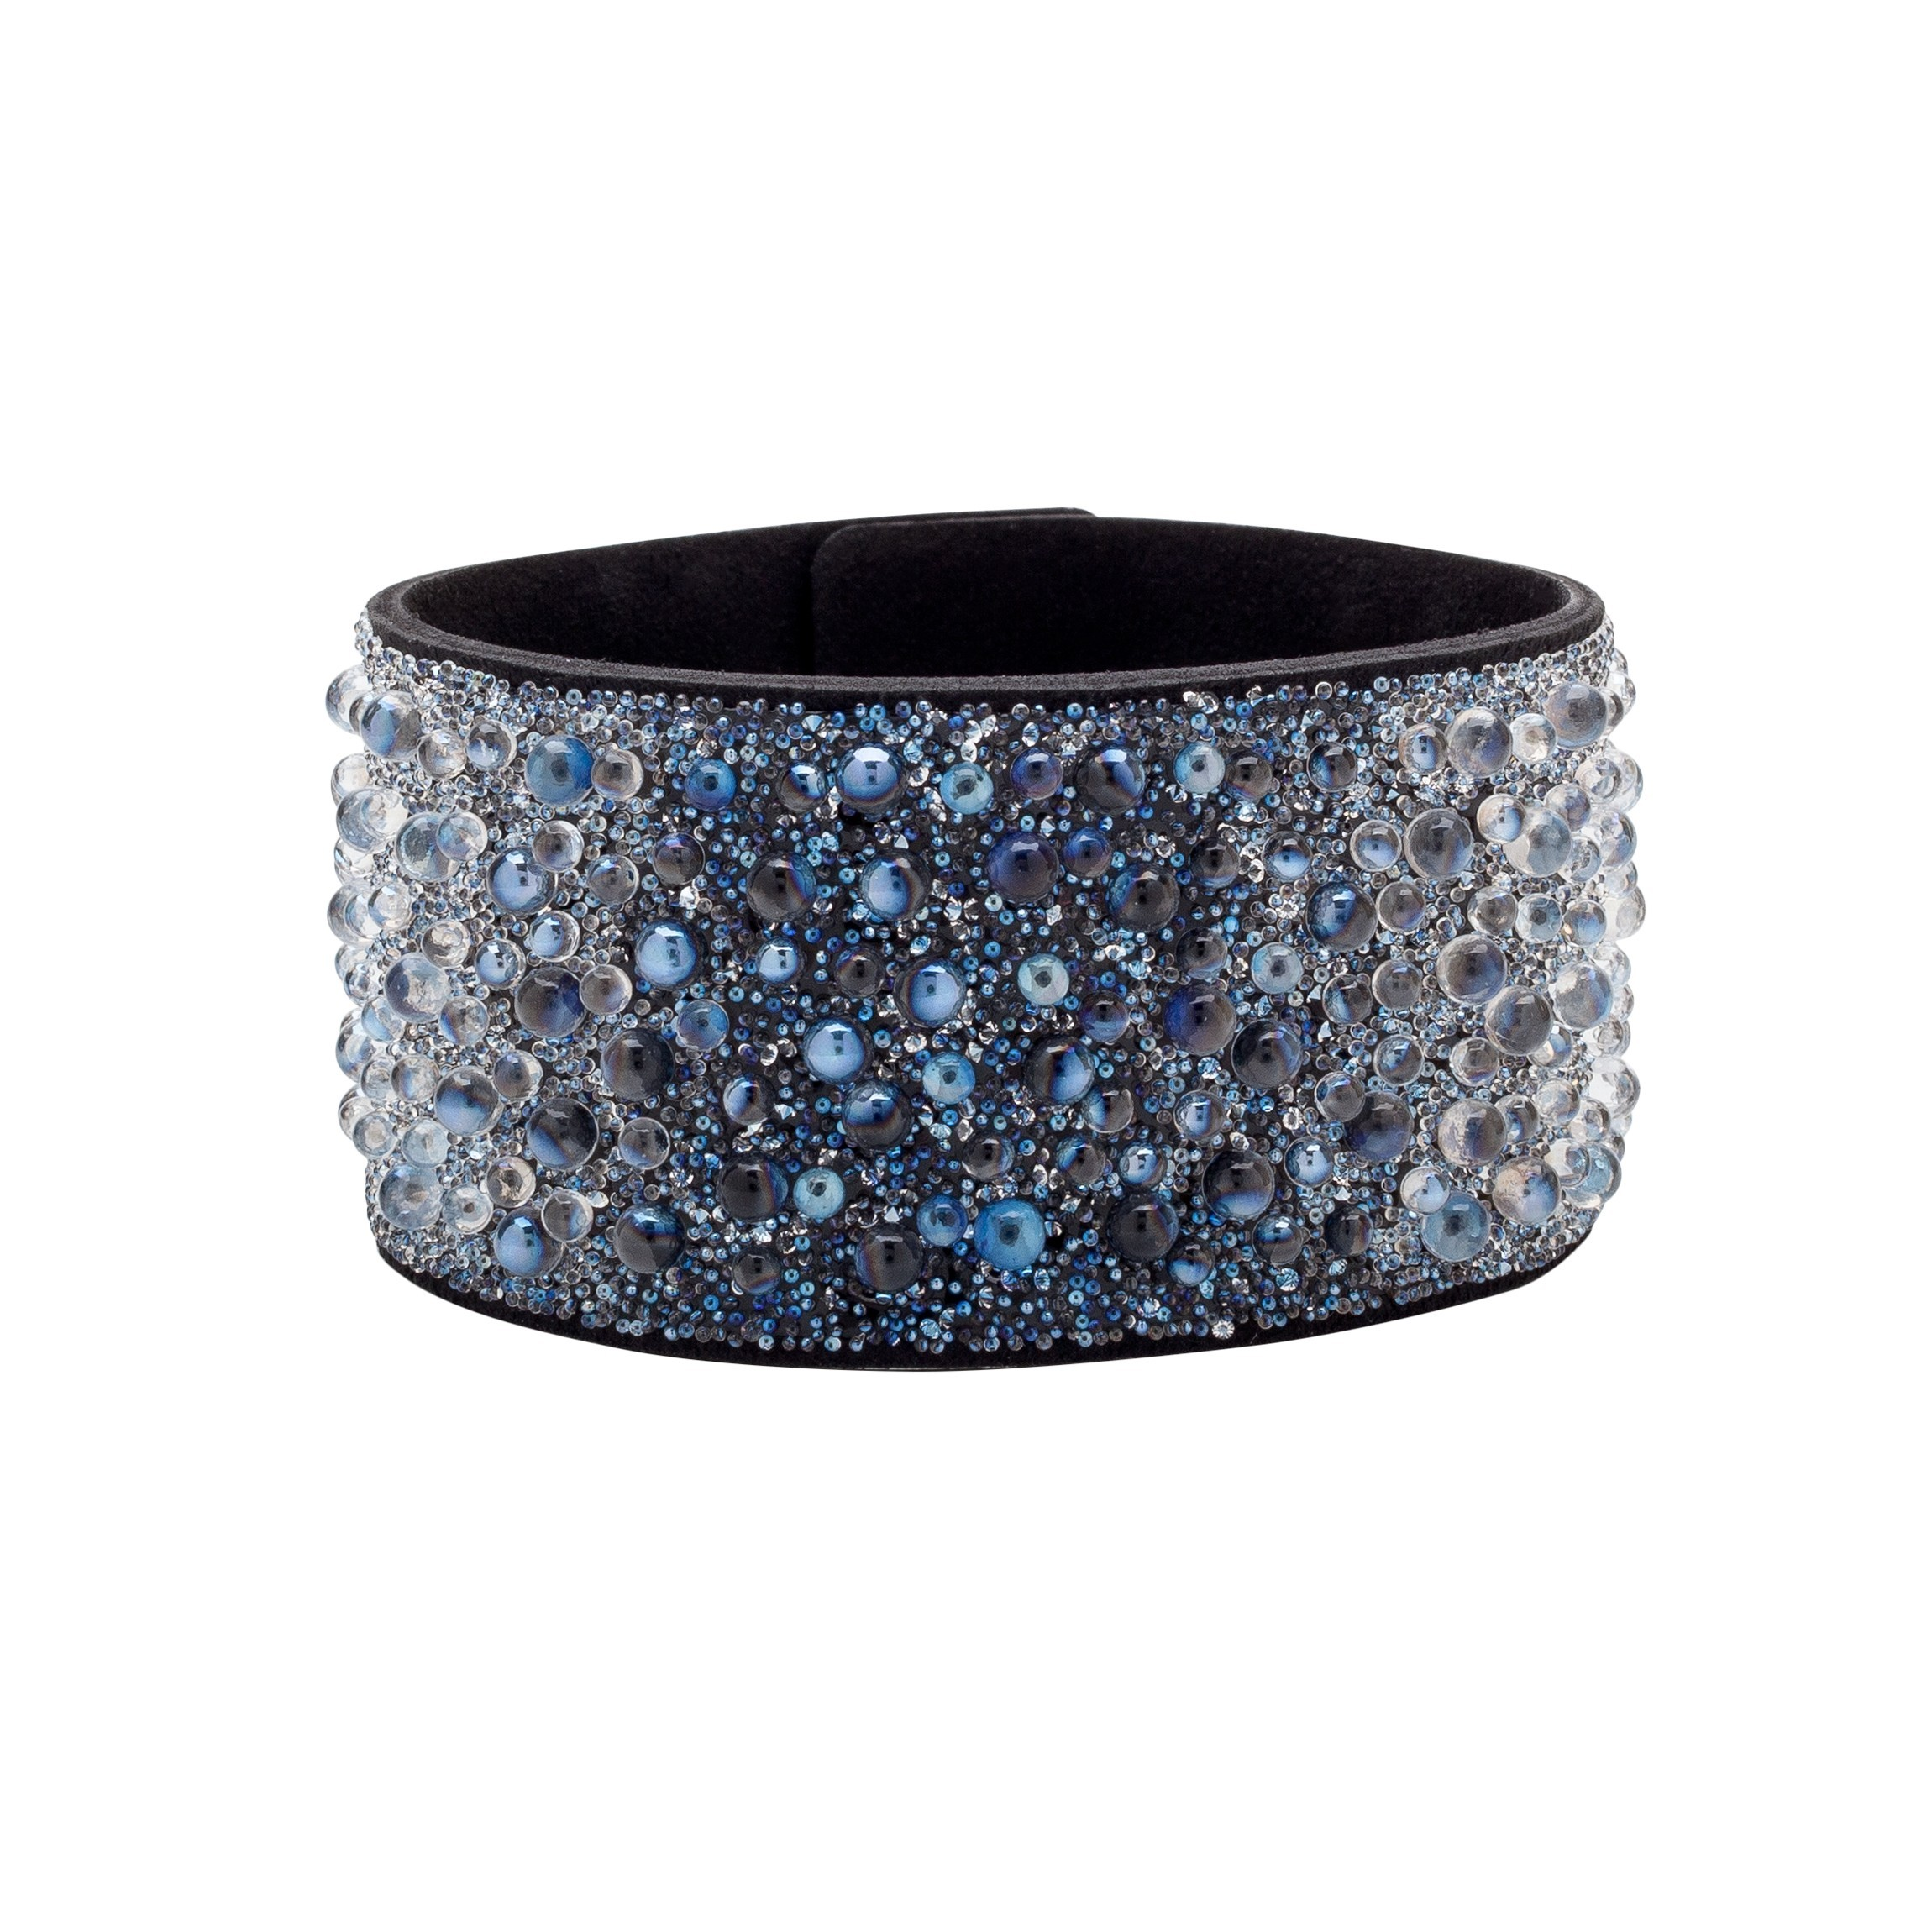 BRACELET WITH ALCANTARA AND SWAROVSKI CRY GALUCHAT STONES – MODEL 11